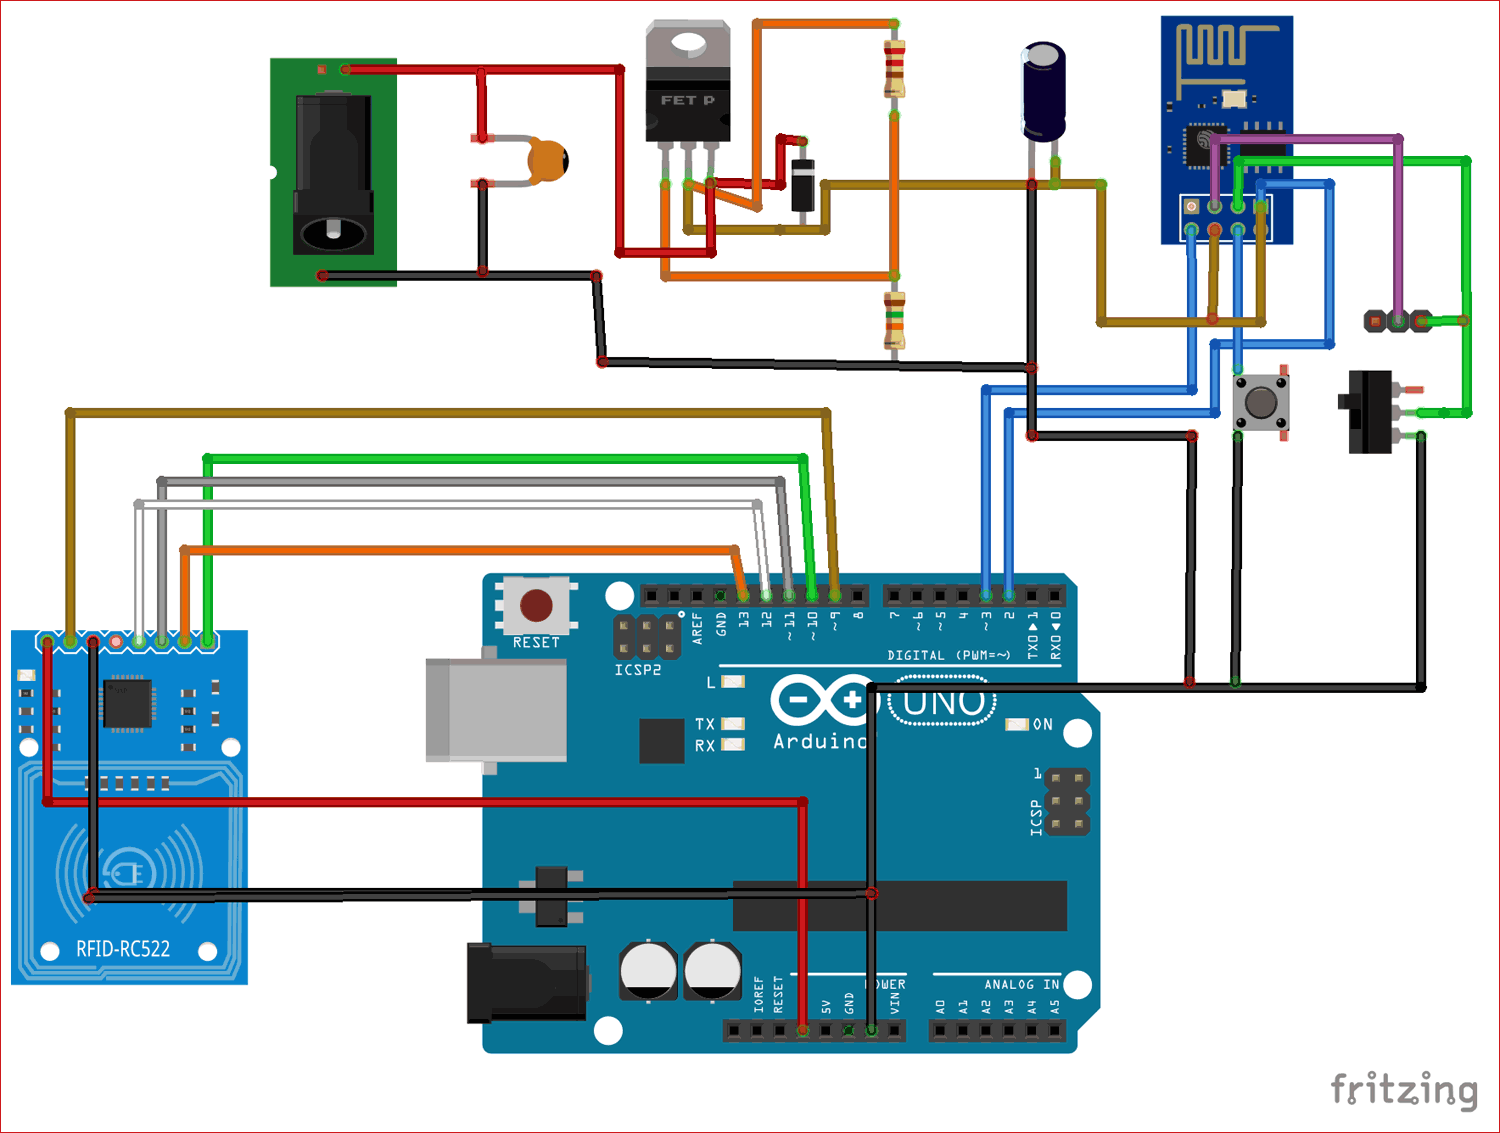 Circuit Diagram for RFID Based Attendance System using Arduino and Adafruit IO